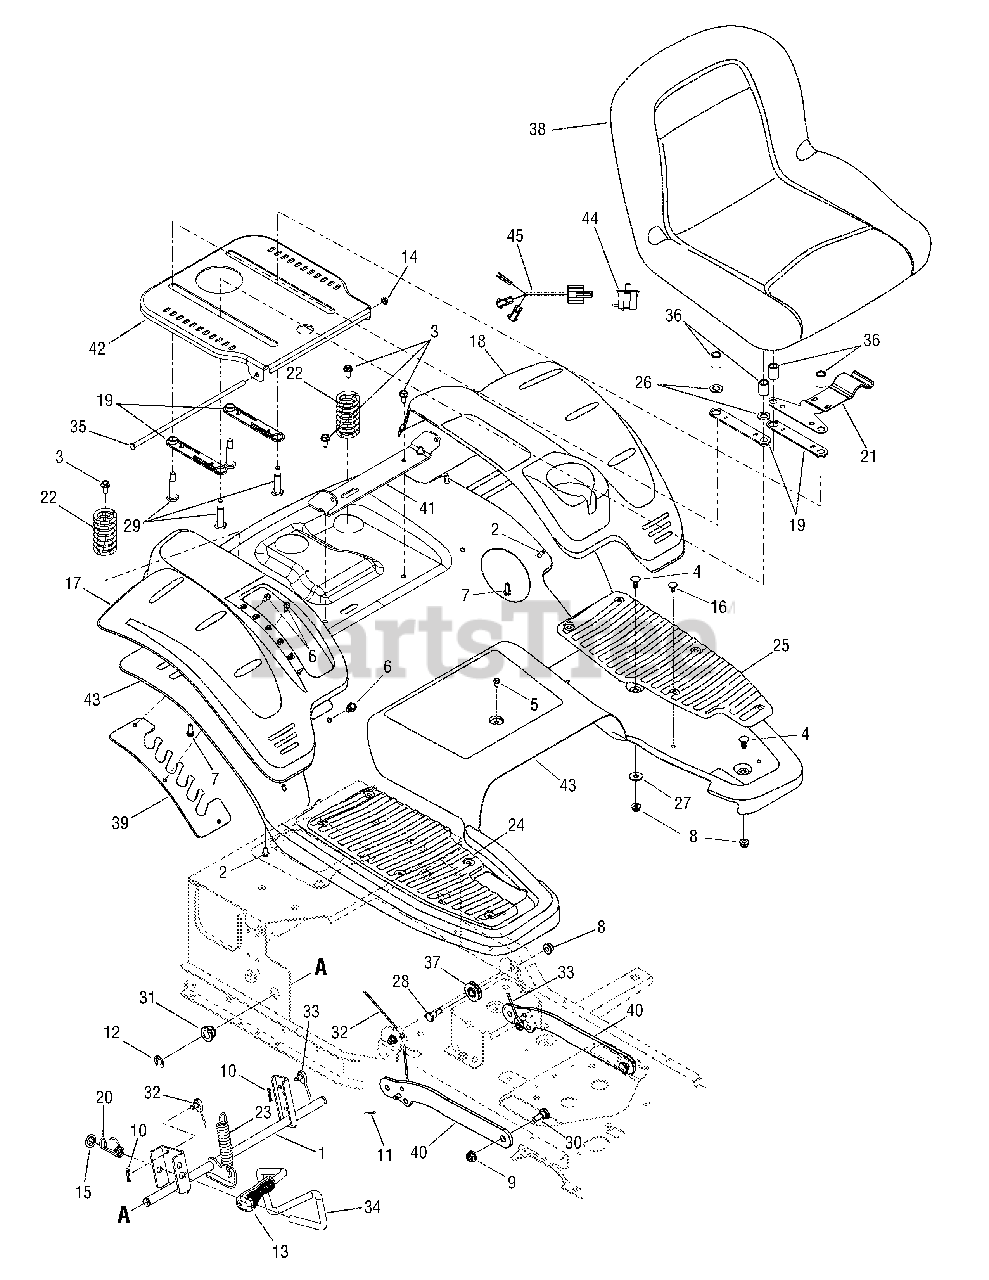 Cub Cadet Parts on the Seat, Fender and Deck Lift Diagram